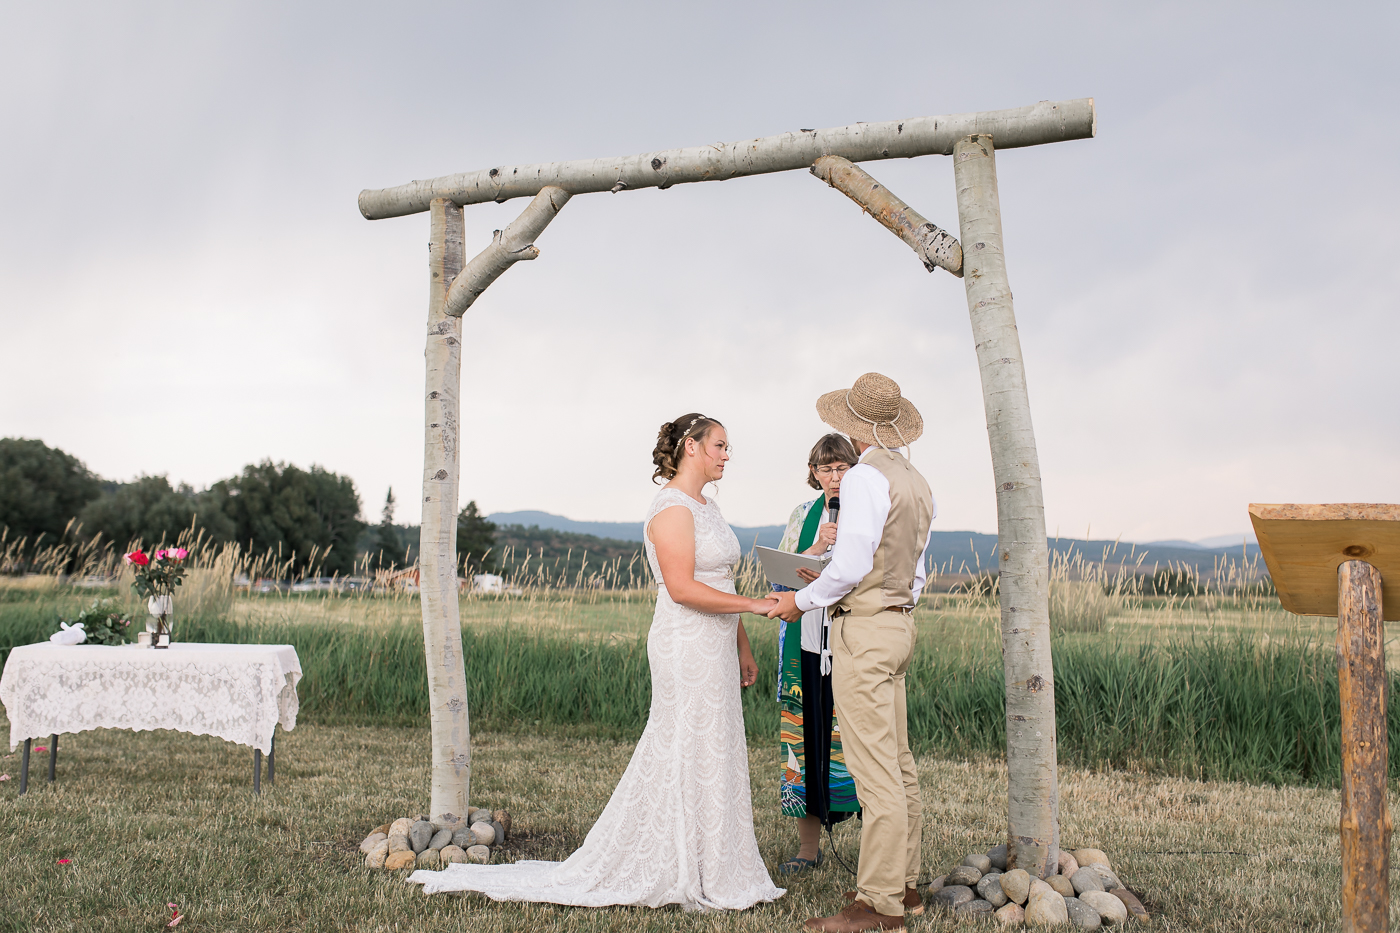 Intimate outdoor wedding ceremony in Colorado